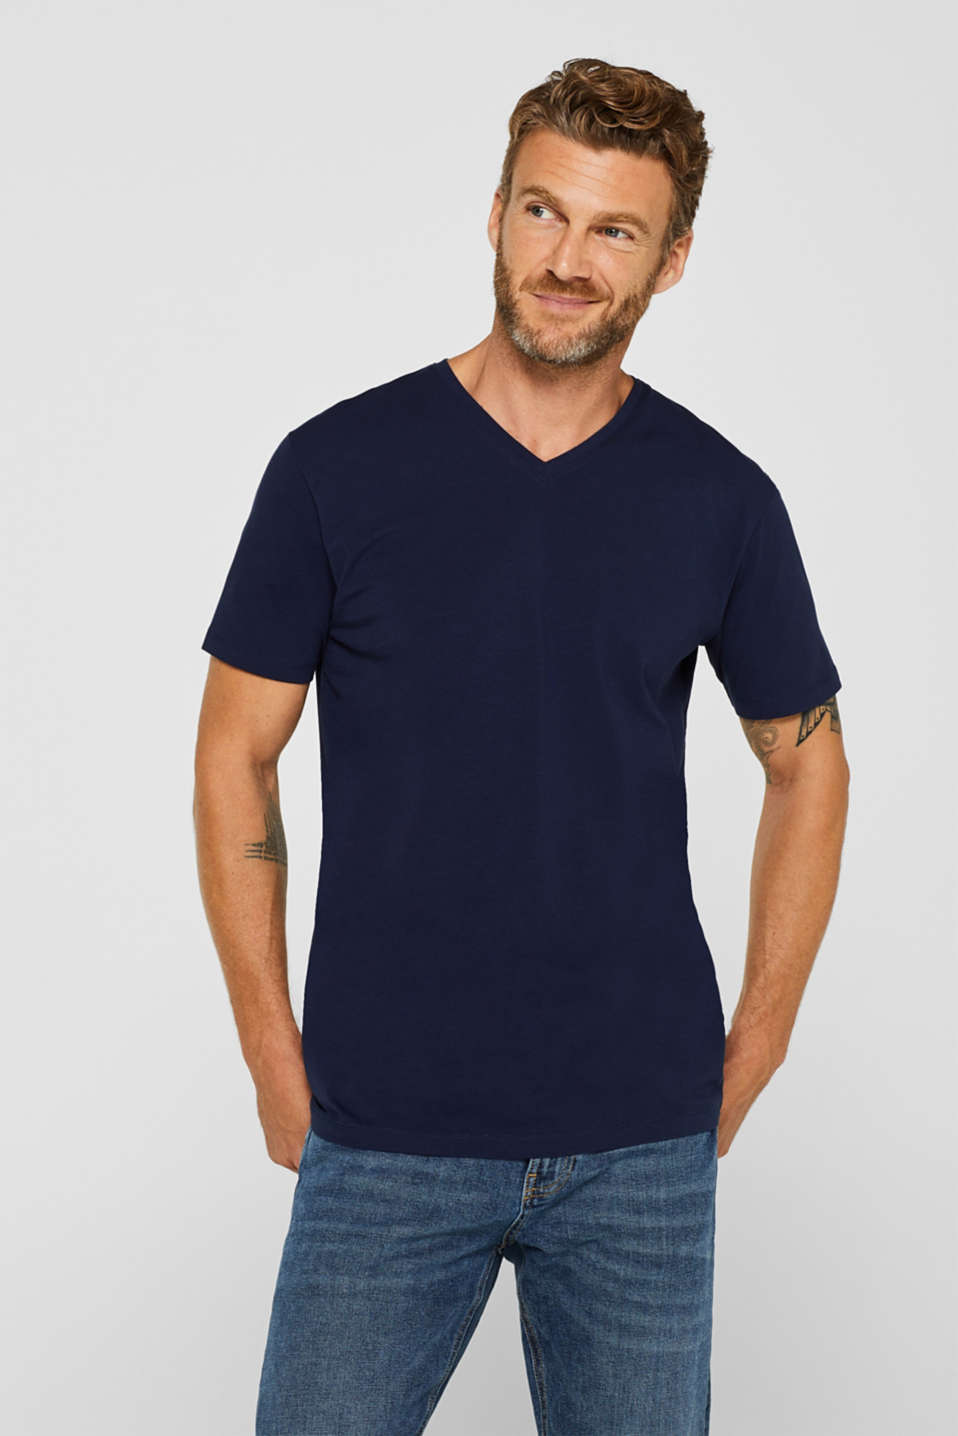 Jersey T-shirt in stretch cotton, NAVY, detail image number 0